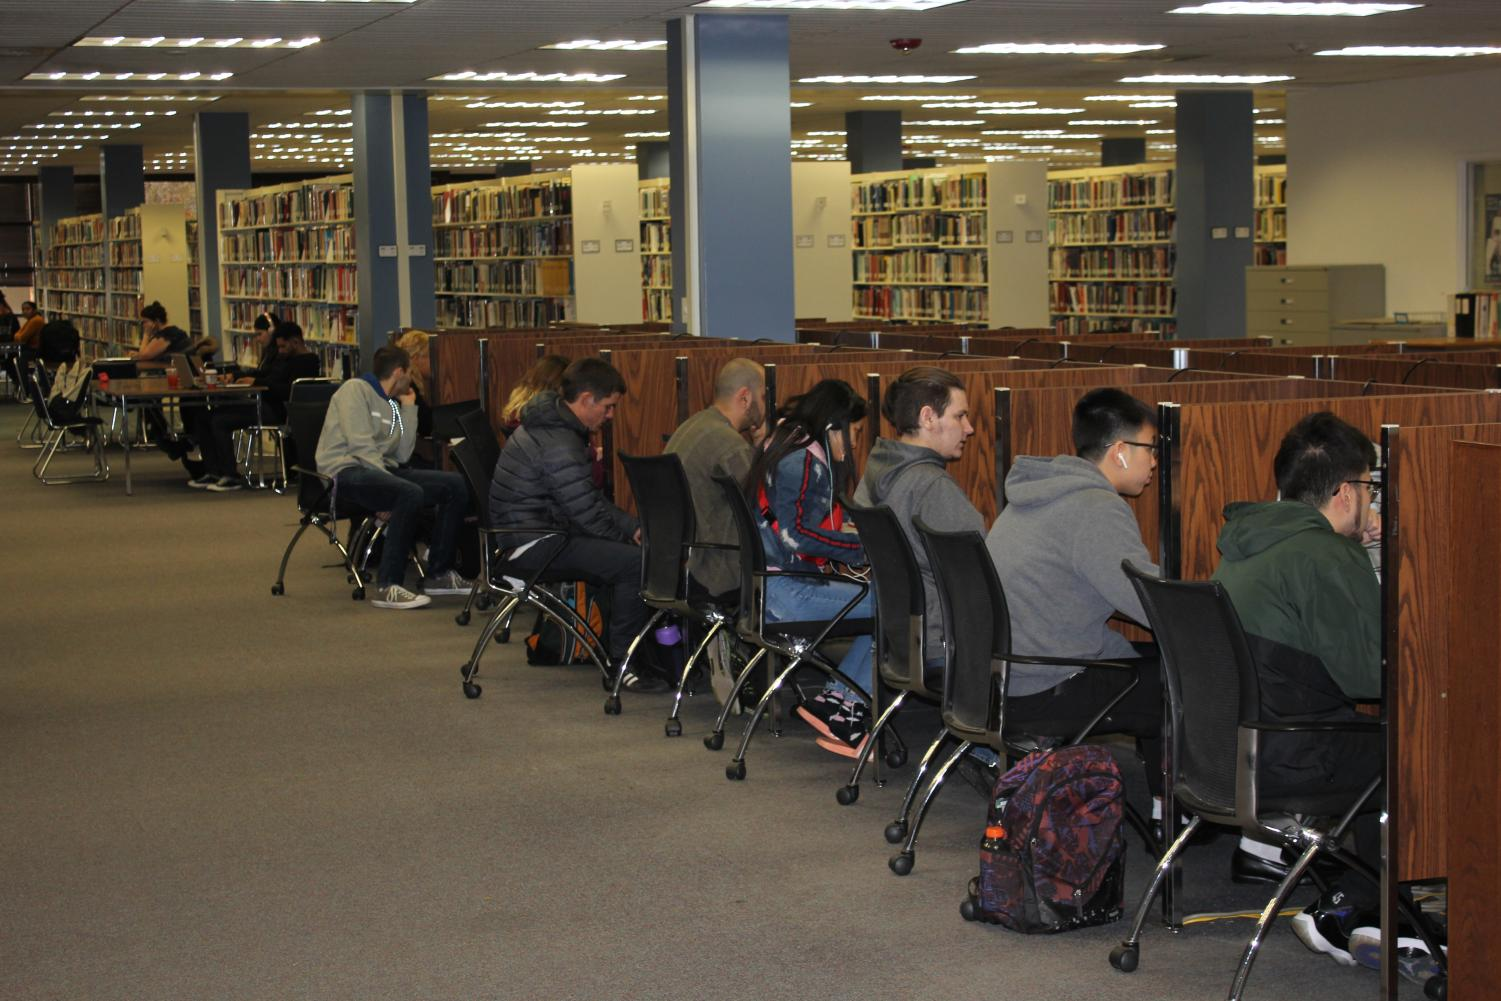 Students studying the week before finals in the Sac State Library. Next year, students may no longer have access to the updated Elsevier scientific journal database as the CSU system is renegotiating their contract with the company due to the high cost.